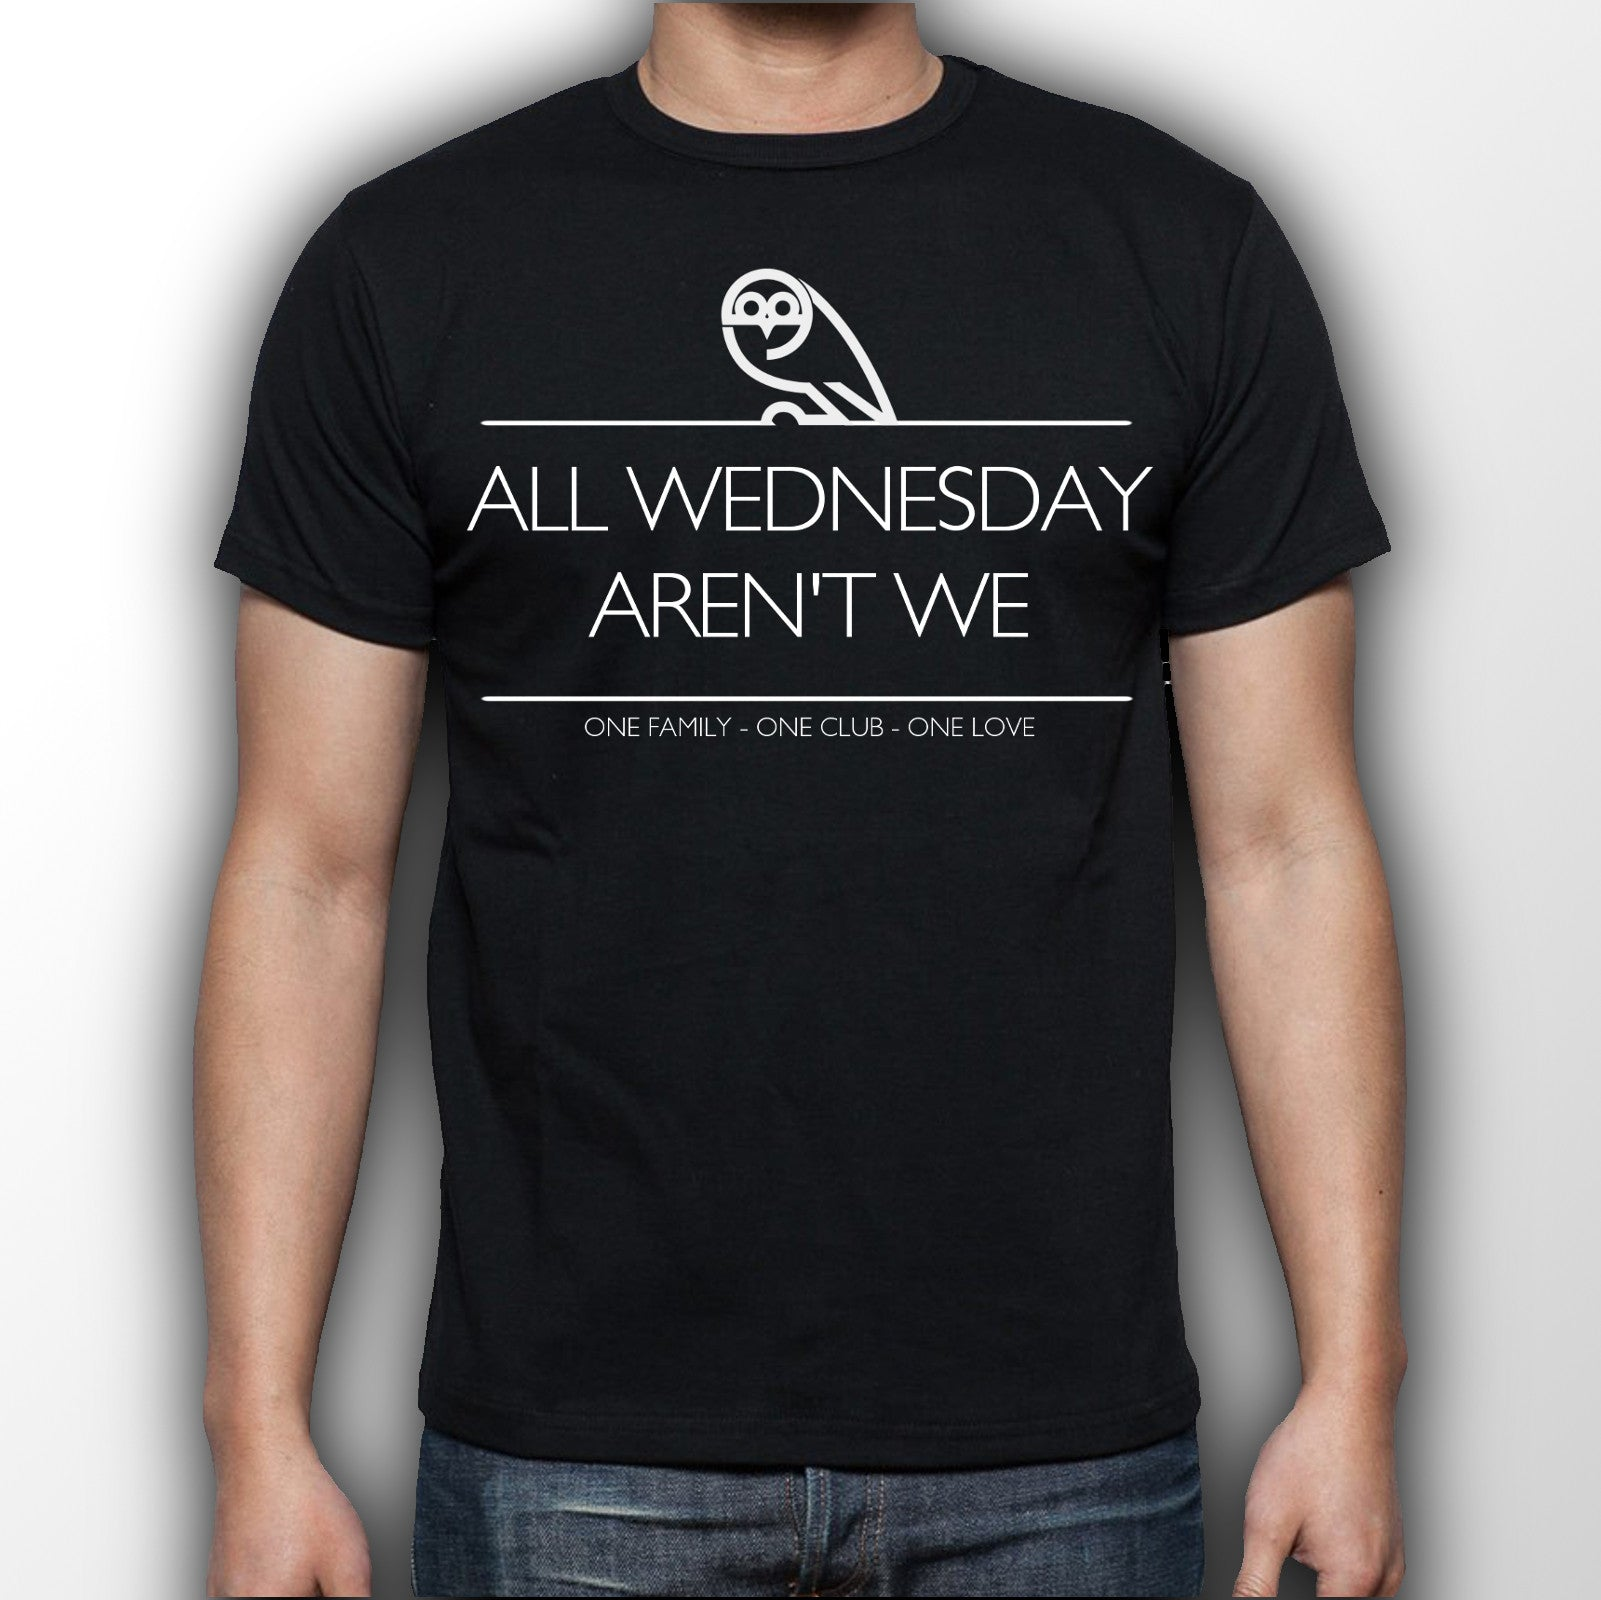 Men's Black All Wednesday aren't we T-shirt